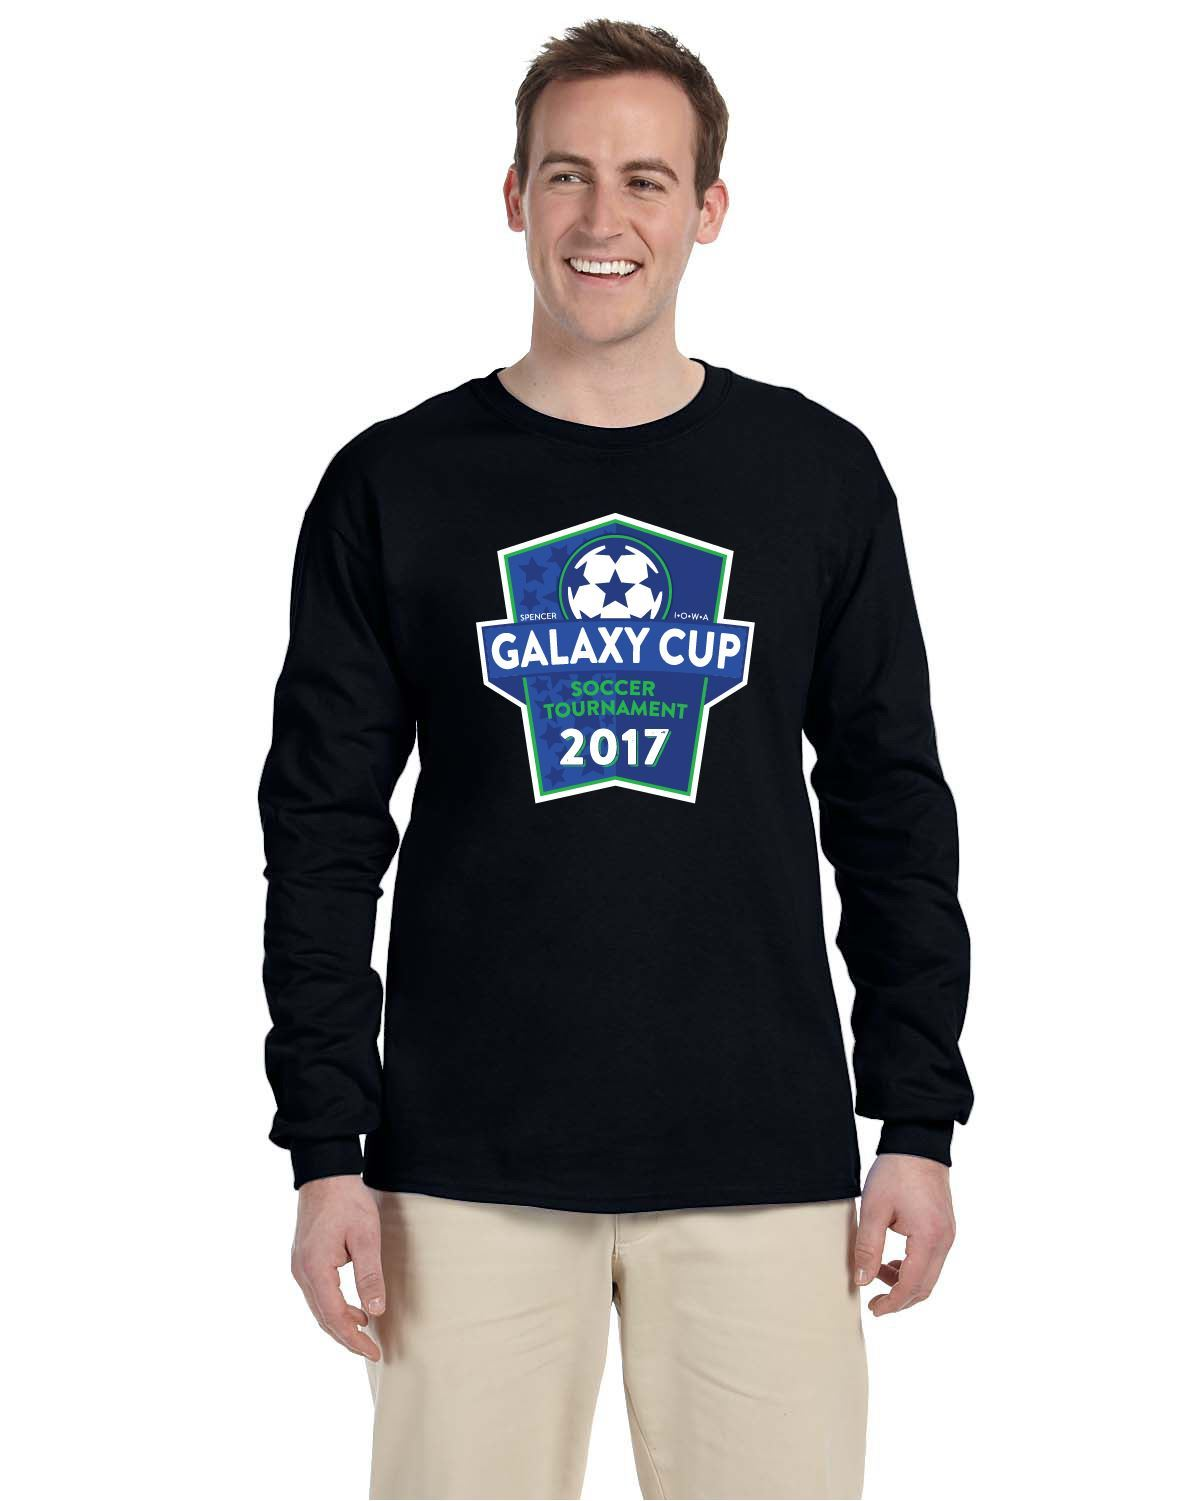 Galaxy Cup Long Sleeve Tee - Black Goal Kick Soccer Youth Large